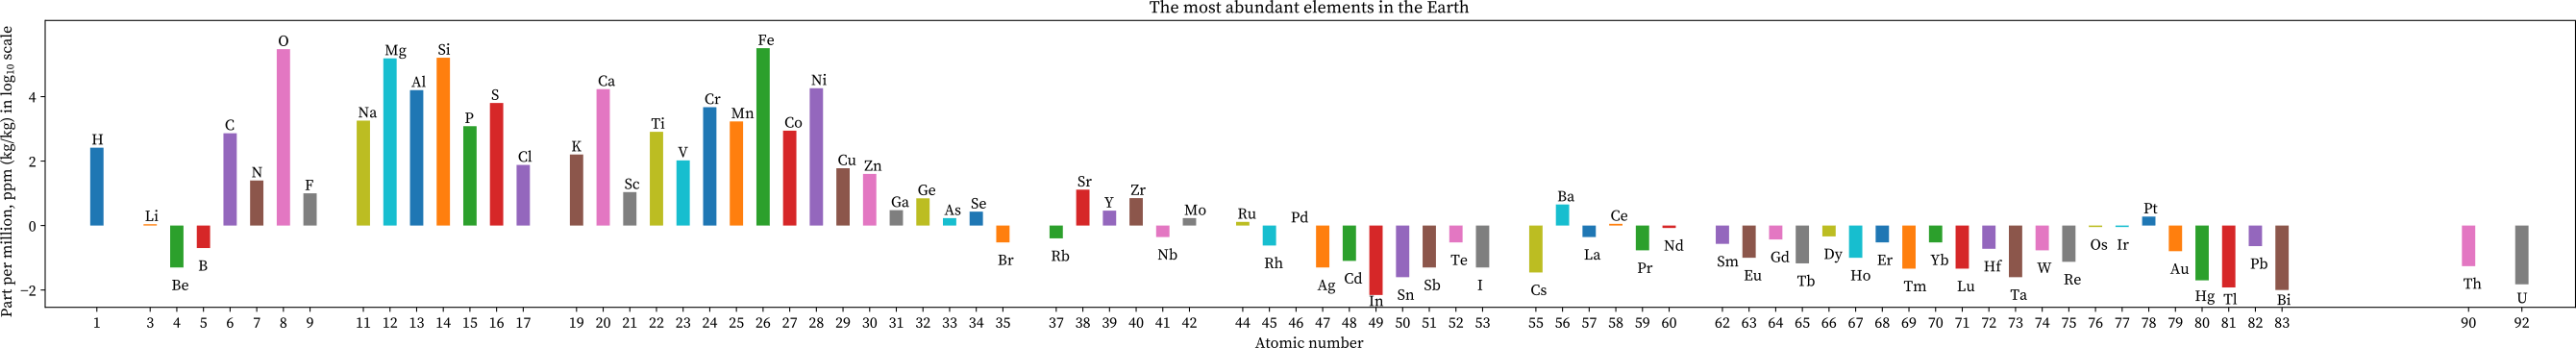 The most abundance of elements in the earth